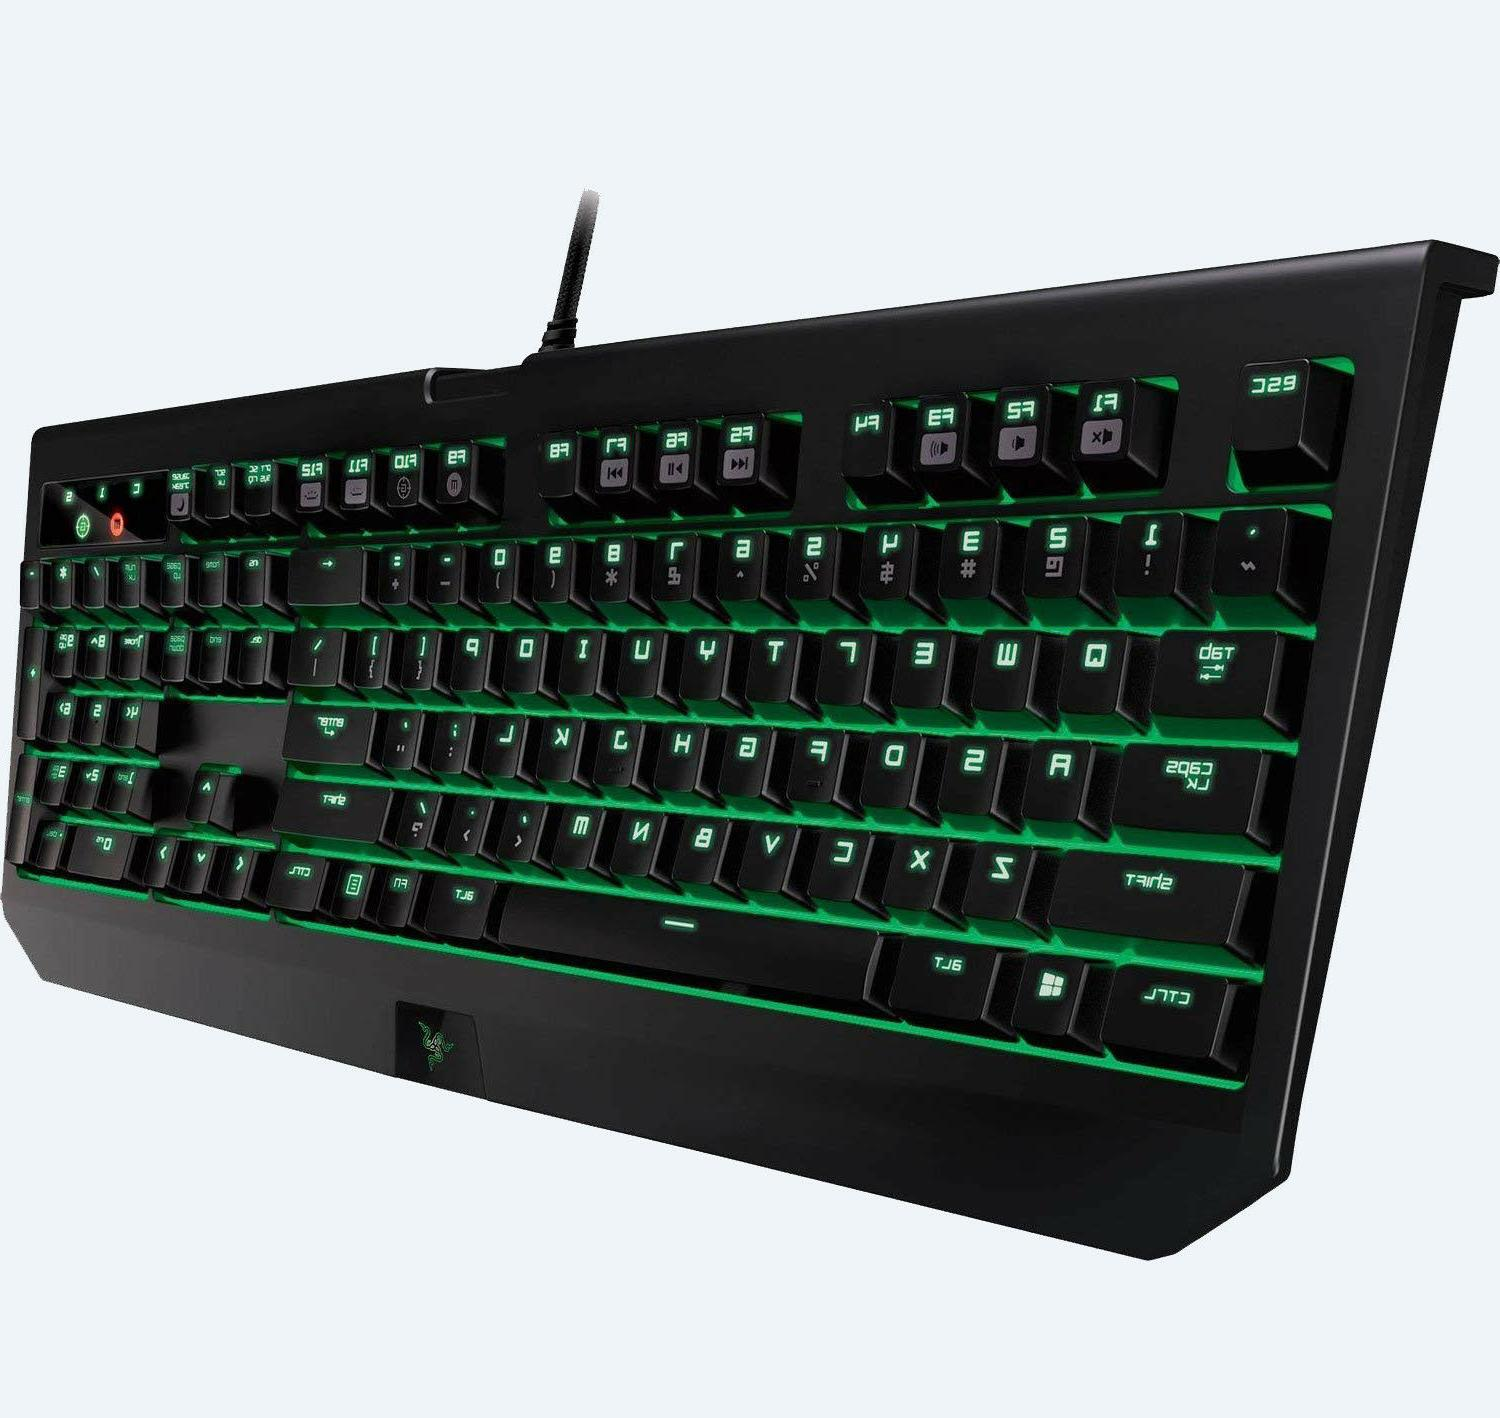 - Gaming Keyboard Programmable - Tactile Razer Switches